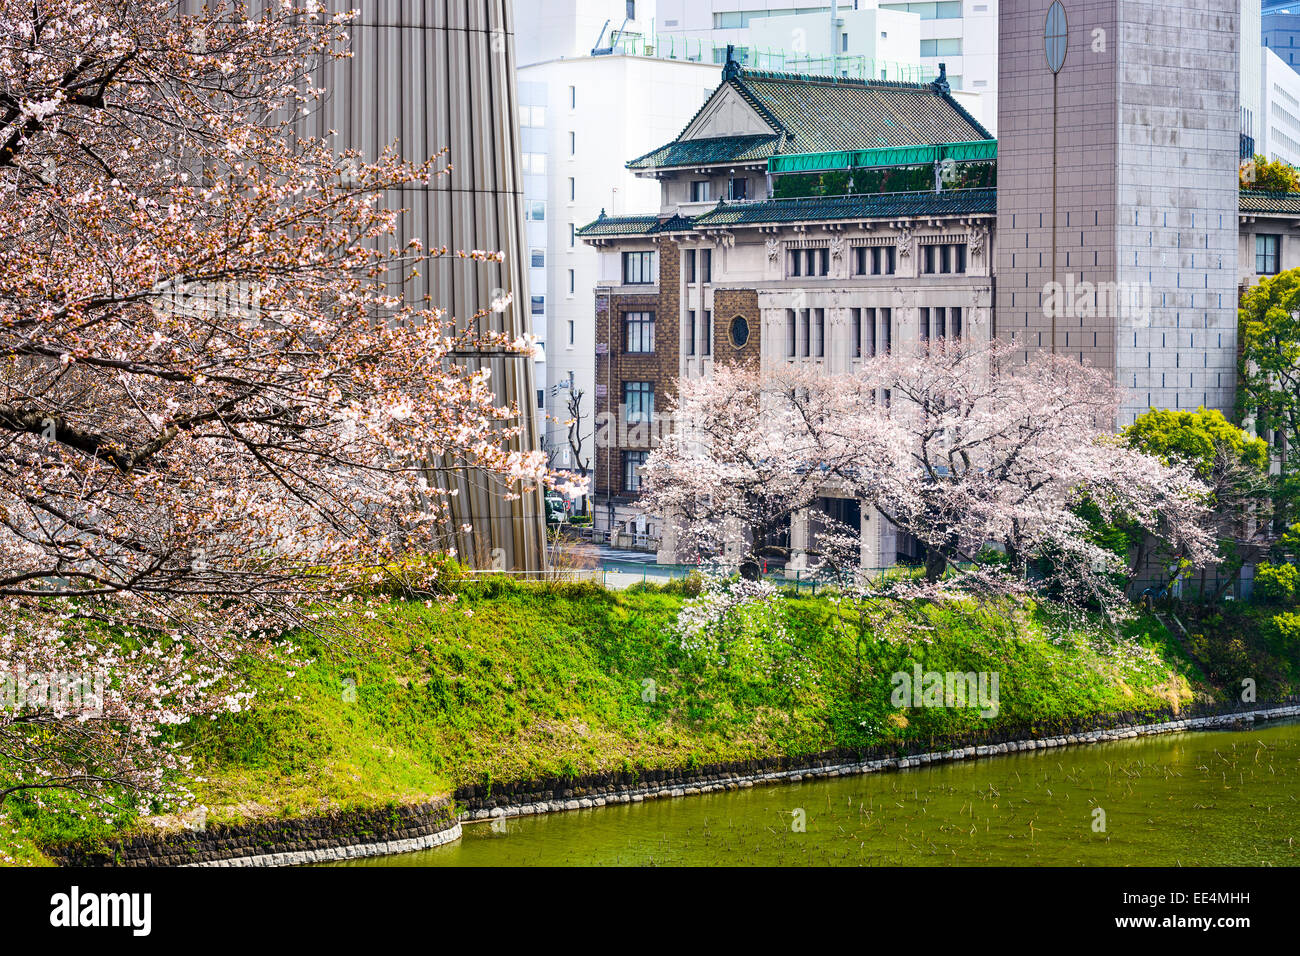 Tokyo, Japan view of buildings around Chidorigafuchi moat in the spring. - Stock Image